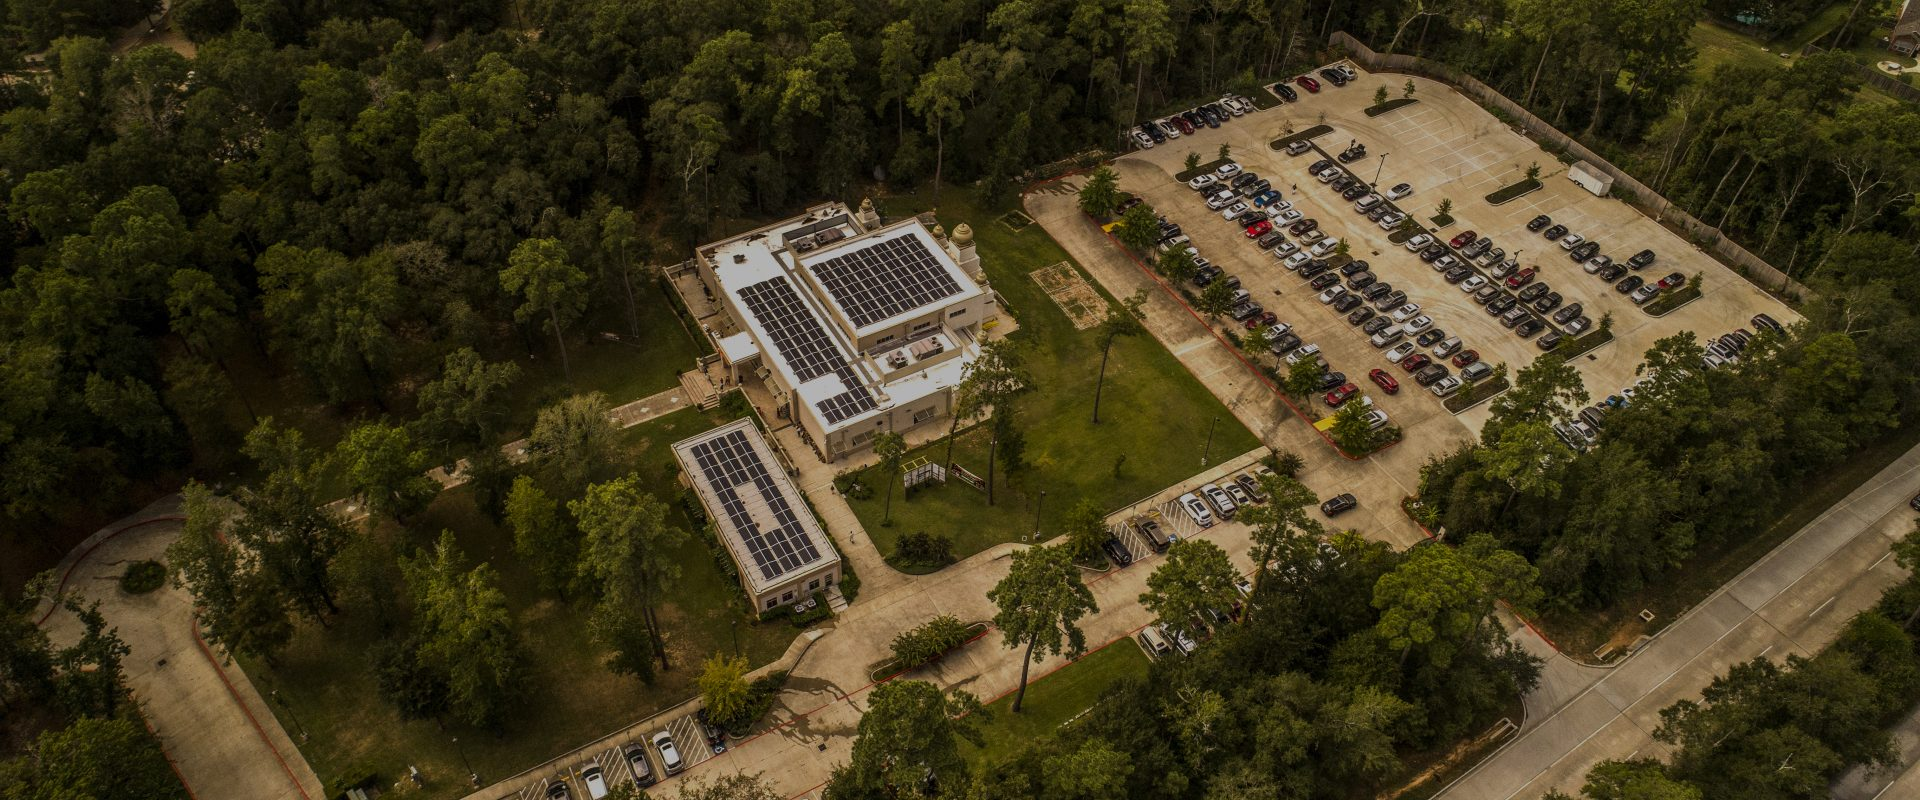 Commercial Solar Installer in TX. Solar installed on hindu temple in woodlands texas.